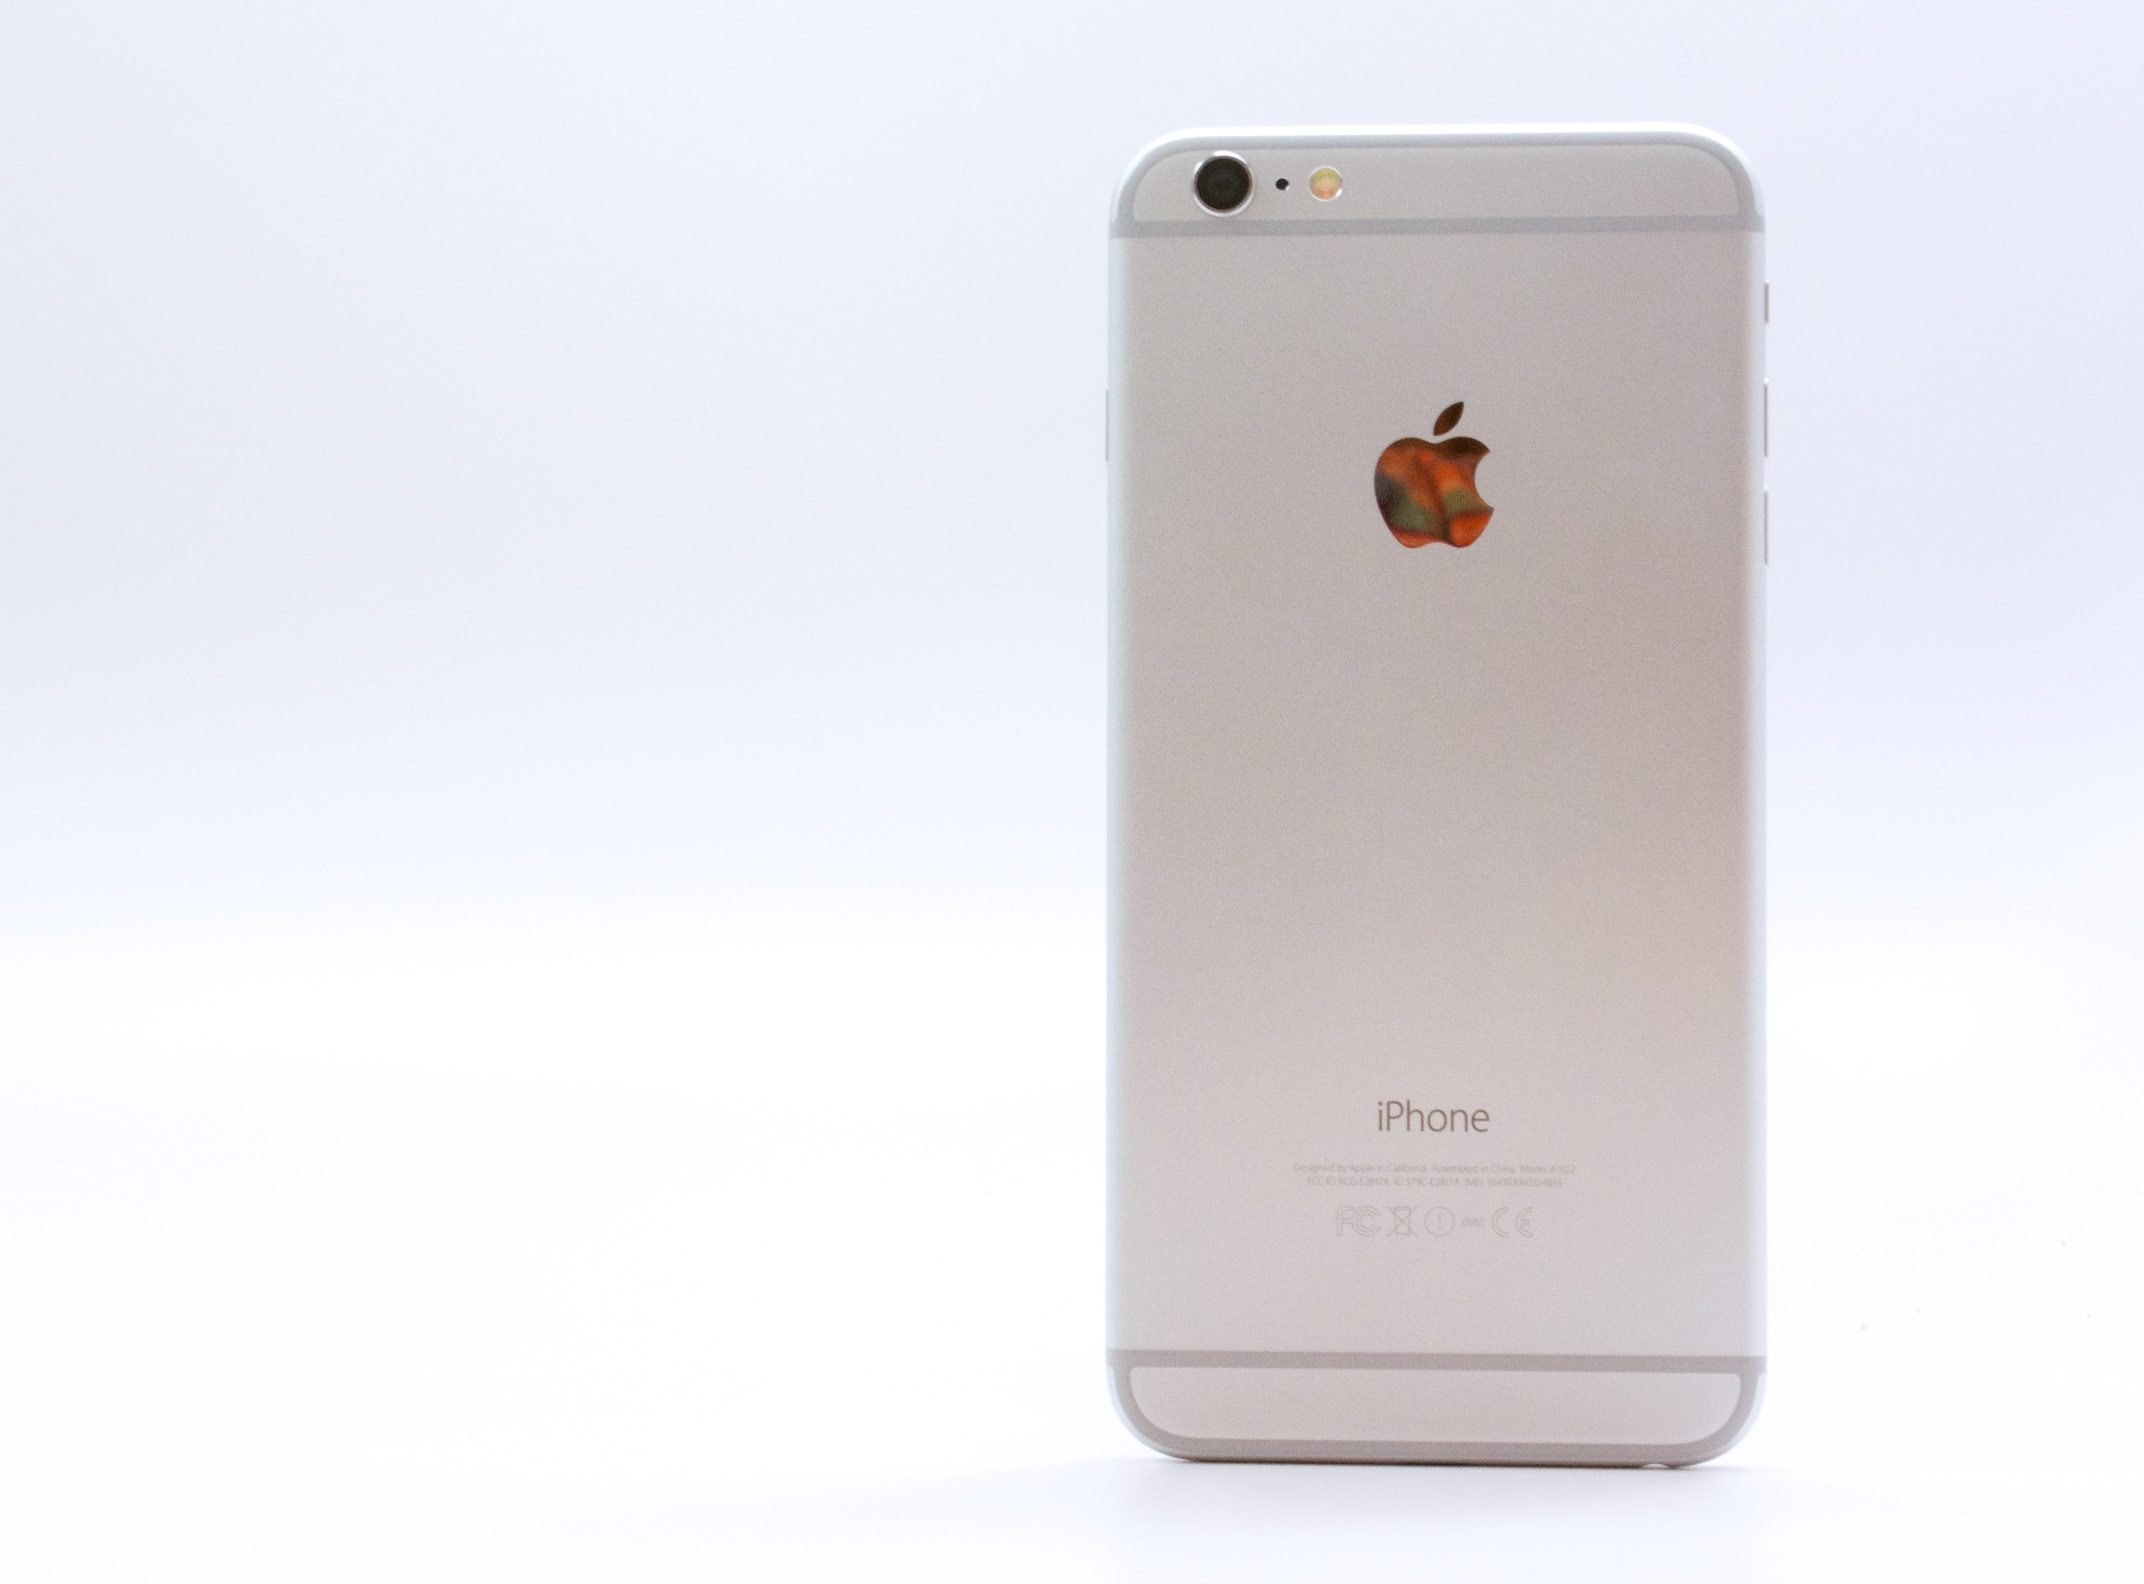 Iphone 6s launch date in Melbourne